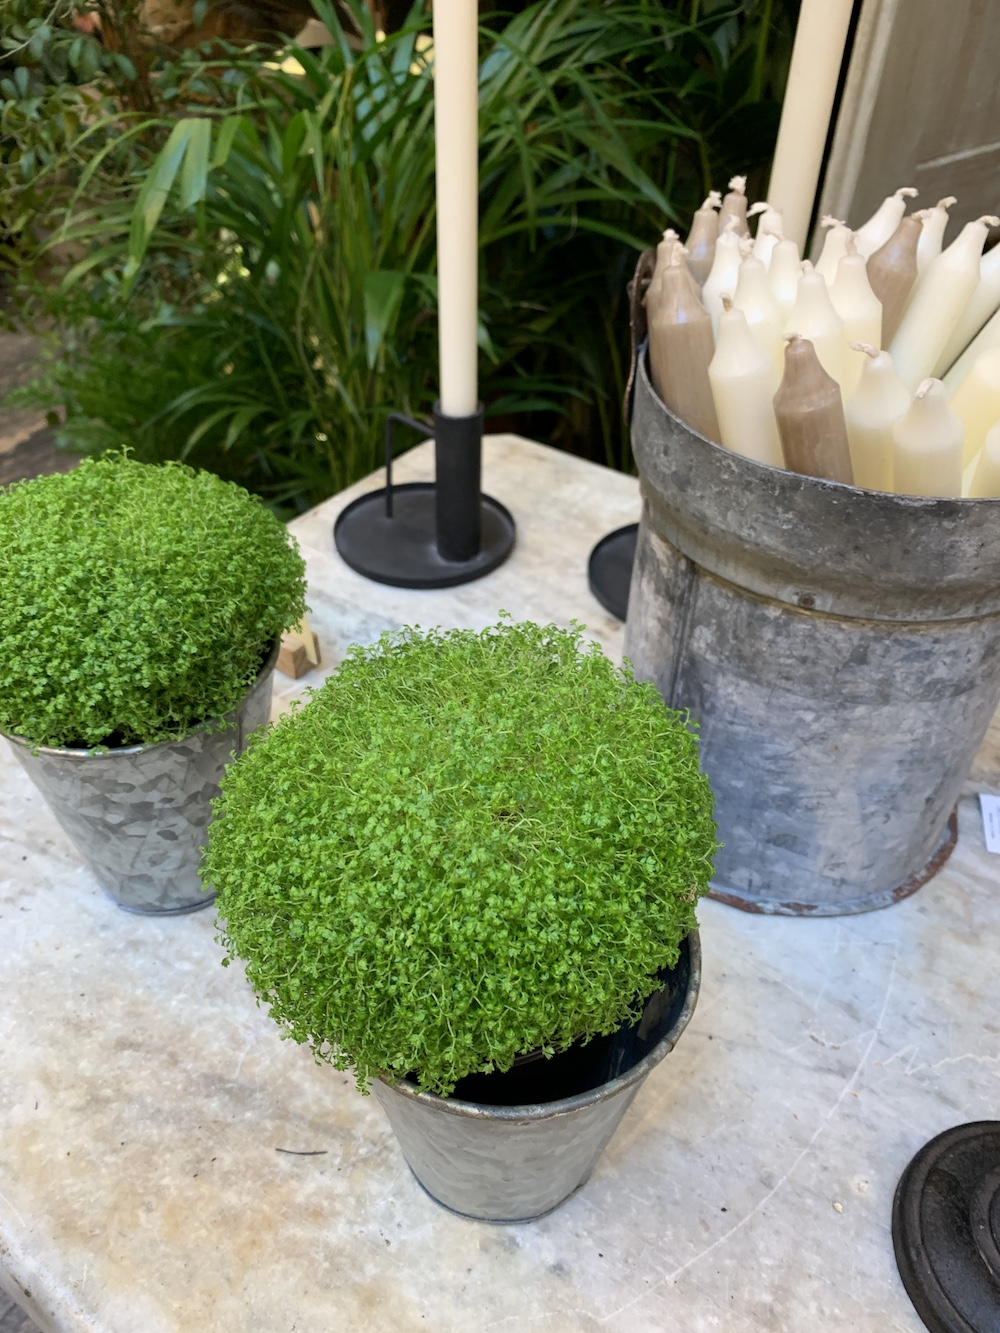 7 Things to do at Petersham Nurseries Petersham Greenery Candles In Galvanized Bucket #PetershamNurseries #Garden #GardenTools #GardenSupplies #Gardening #HomeDecor #GardenDecor #London #CoventGarden